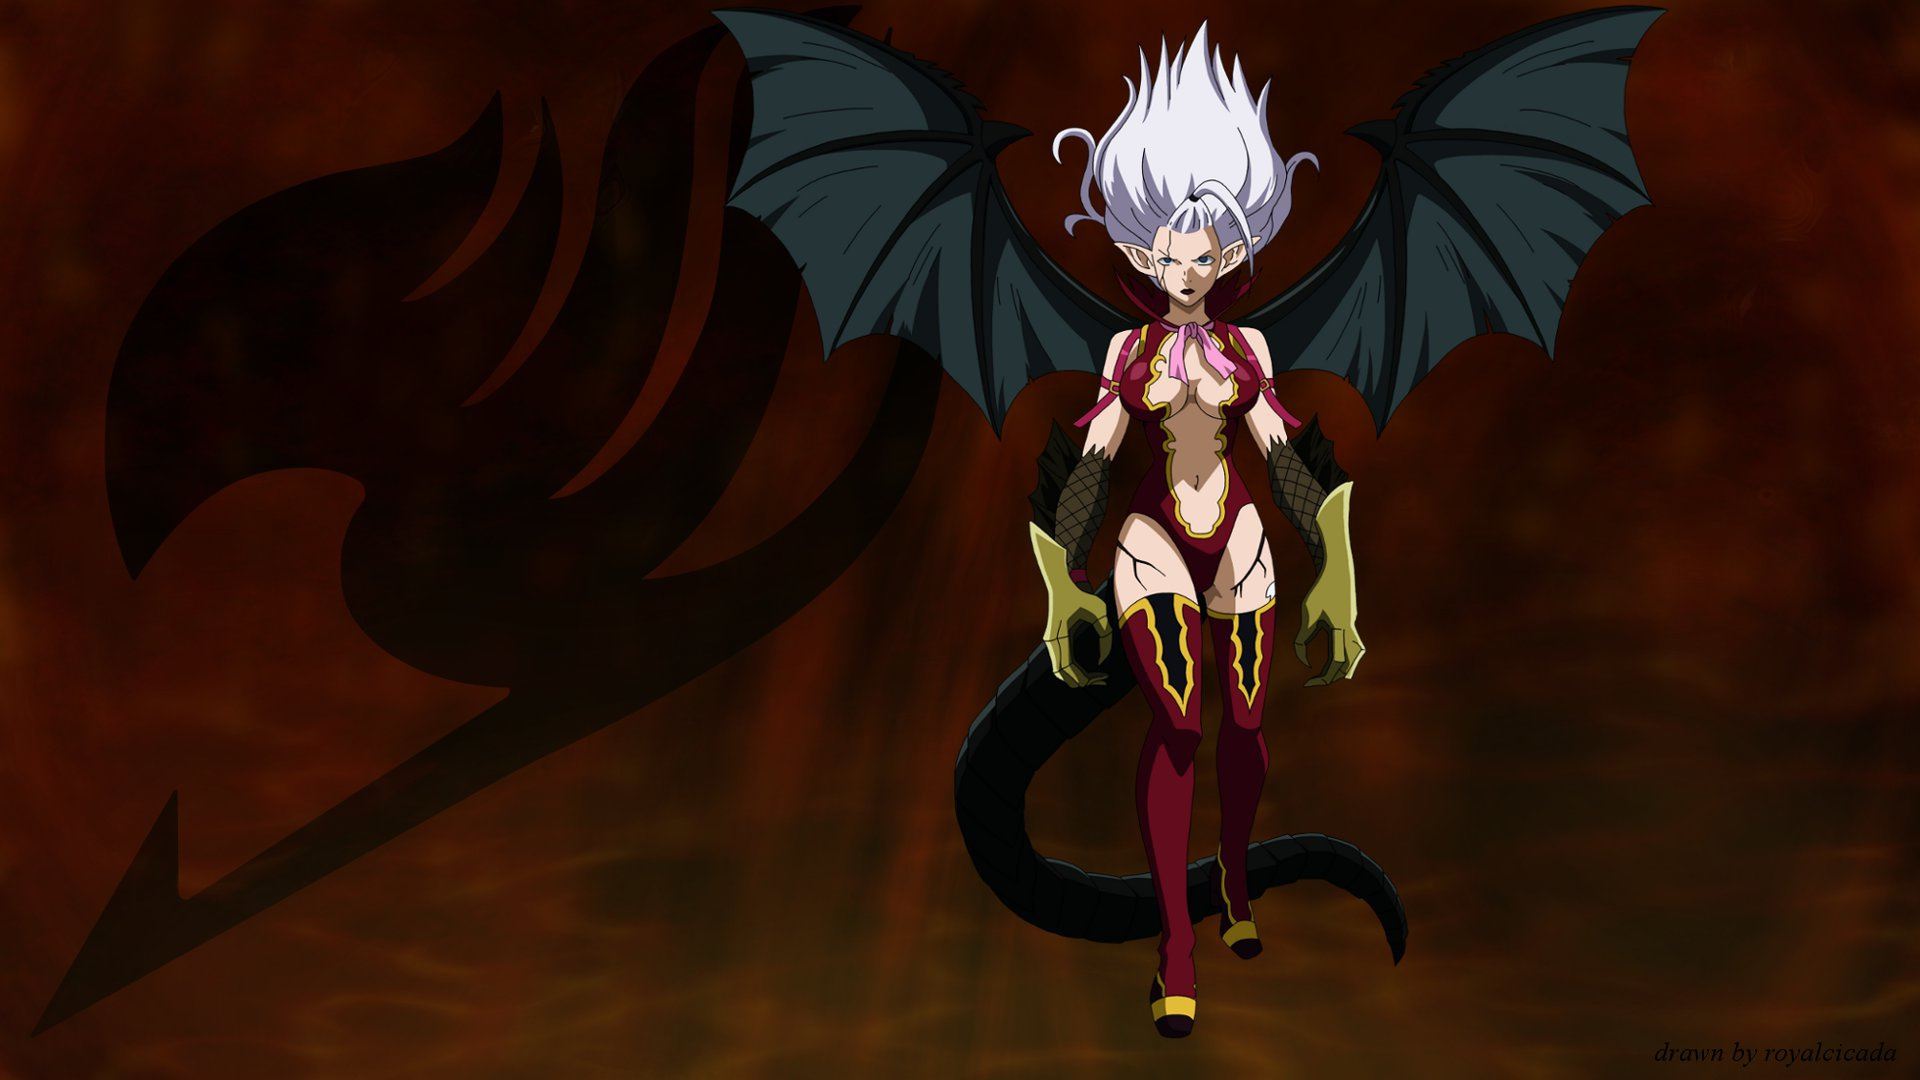 Fairy tail satan soul theme download